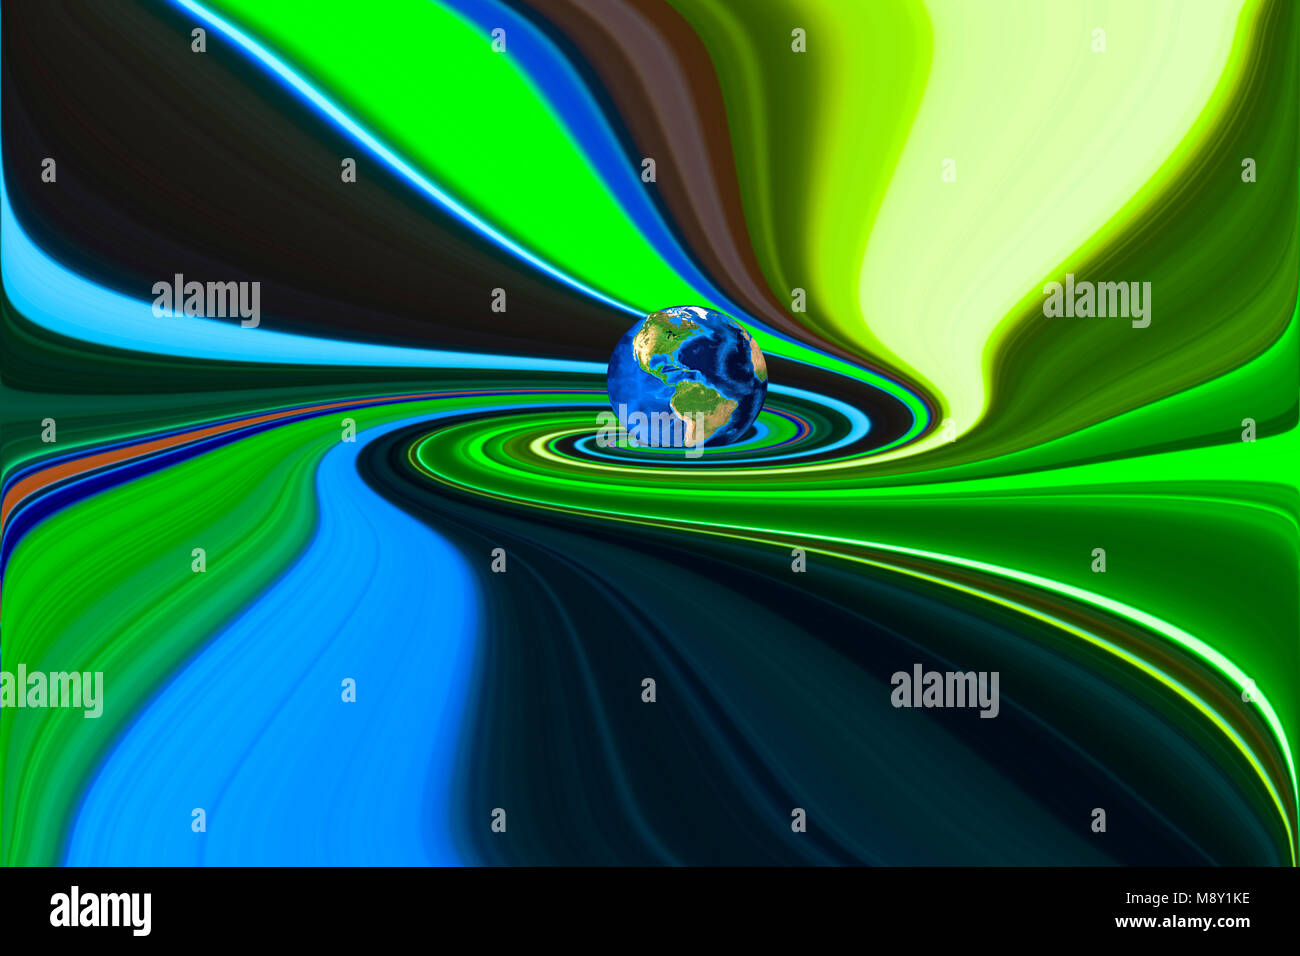 Planet Earth in swirling colorful background Stock Photo